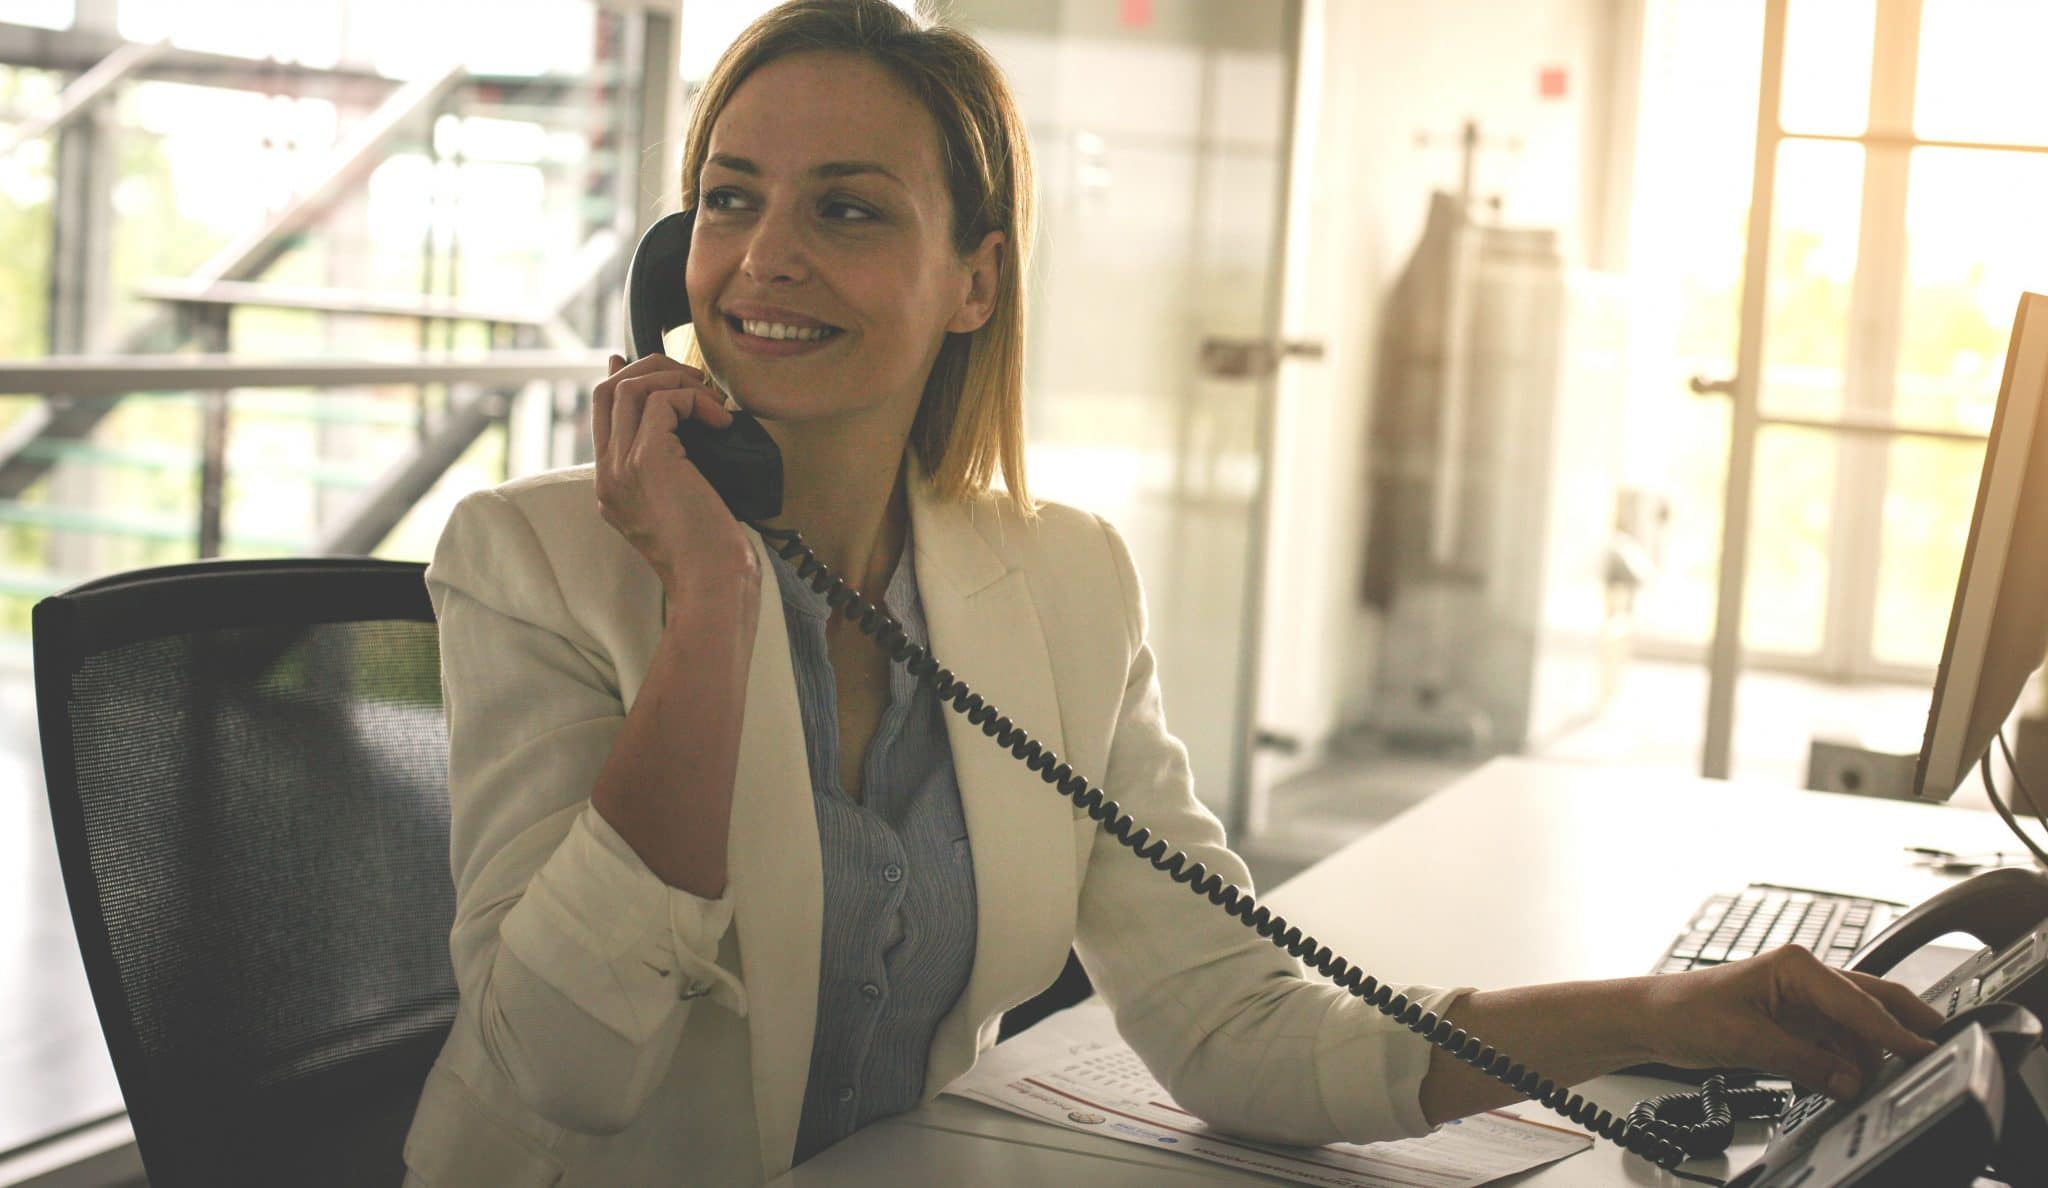 Business woman working in office. Woman talking on Landline phone.